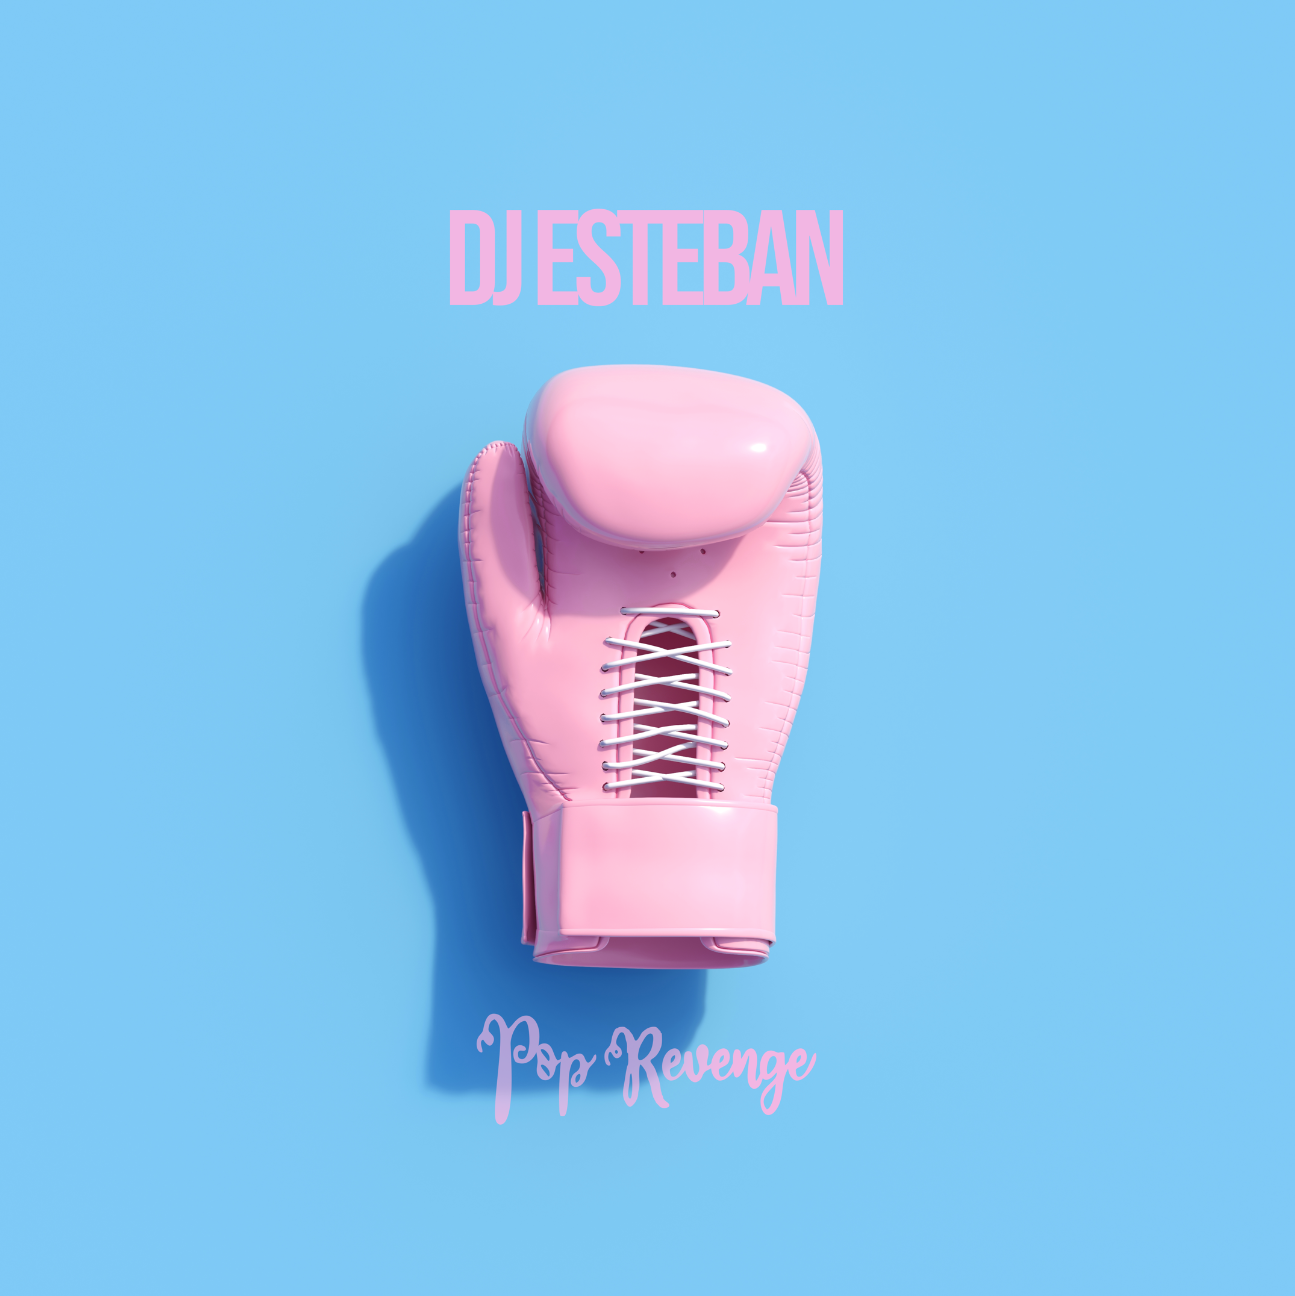 DJ ESTEBAN, As a Human Music Machine, releases POP REVENGE